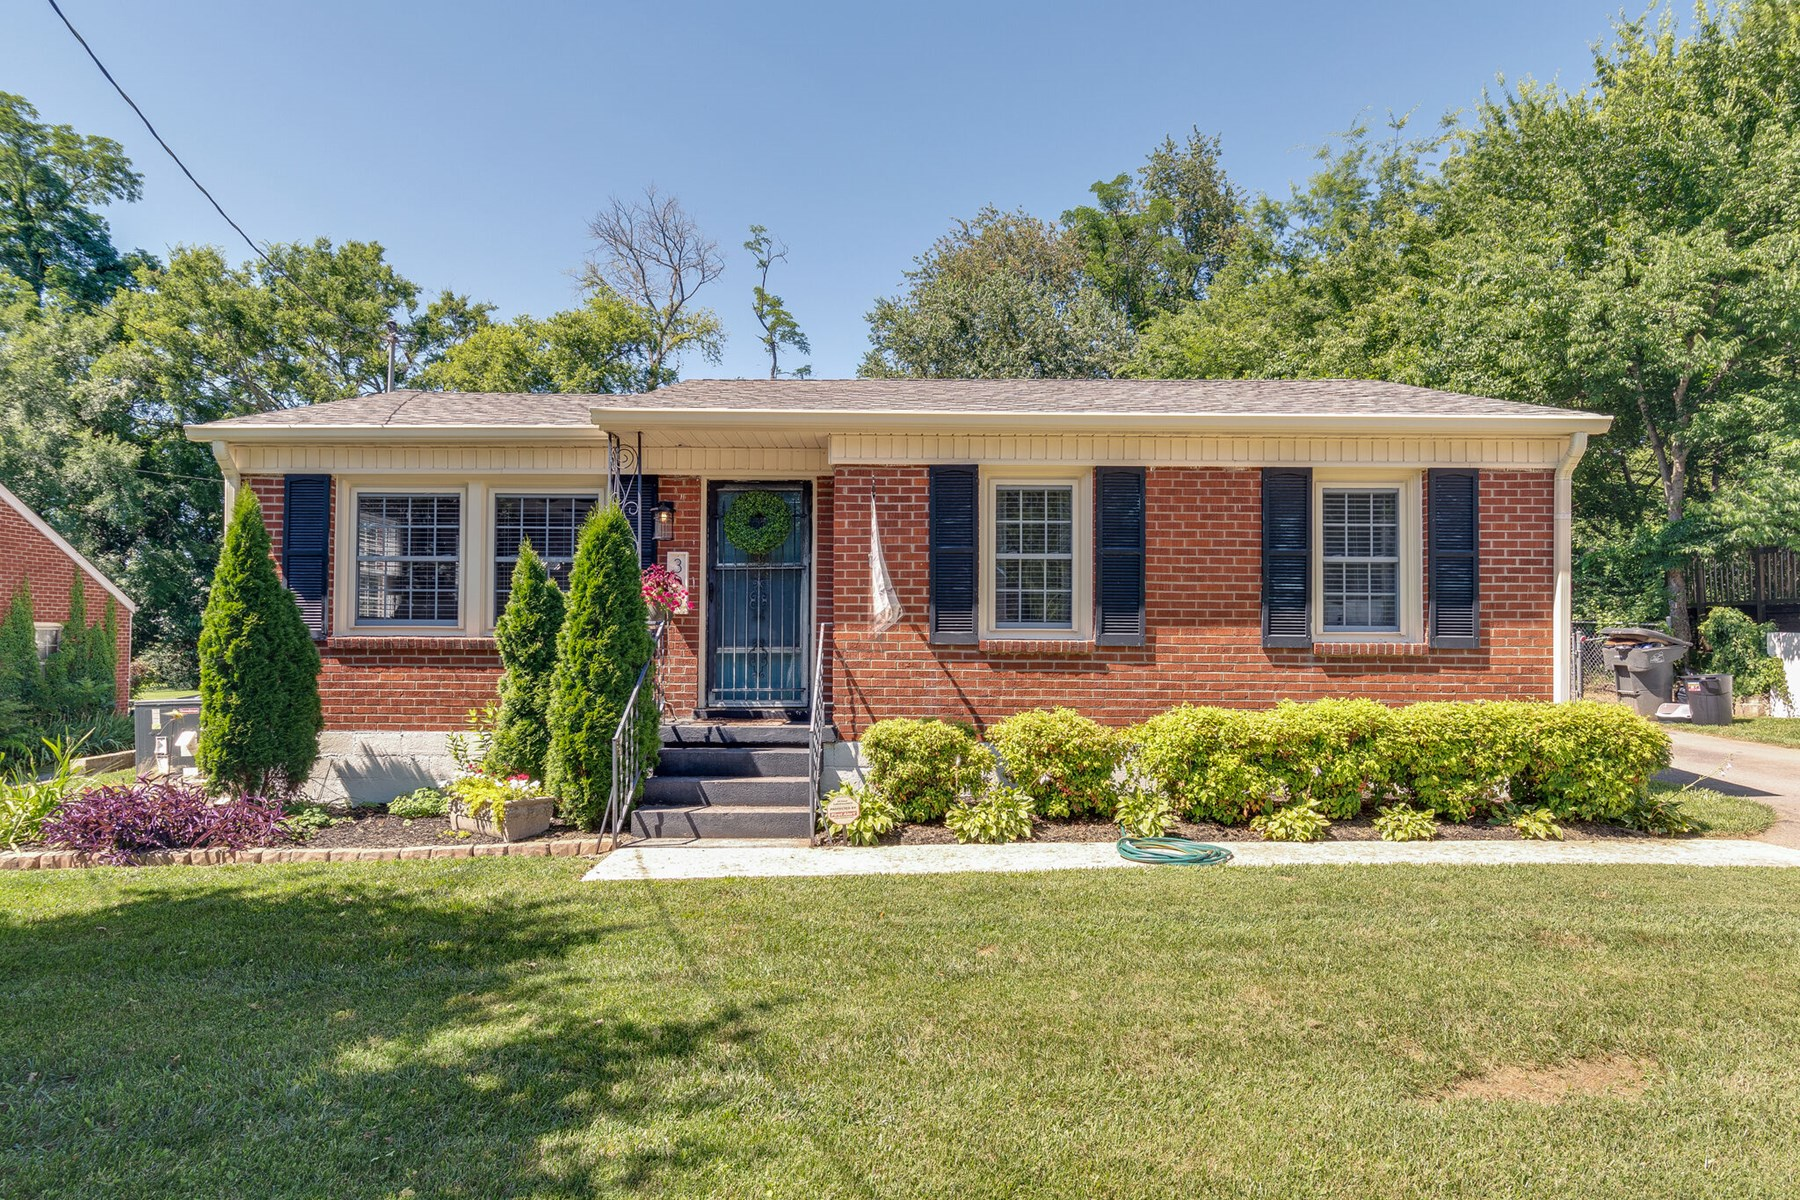 All Brick Home for Sale in Town in Columbia, Tennessee